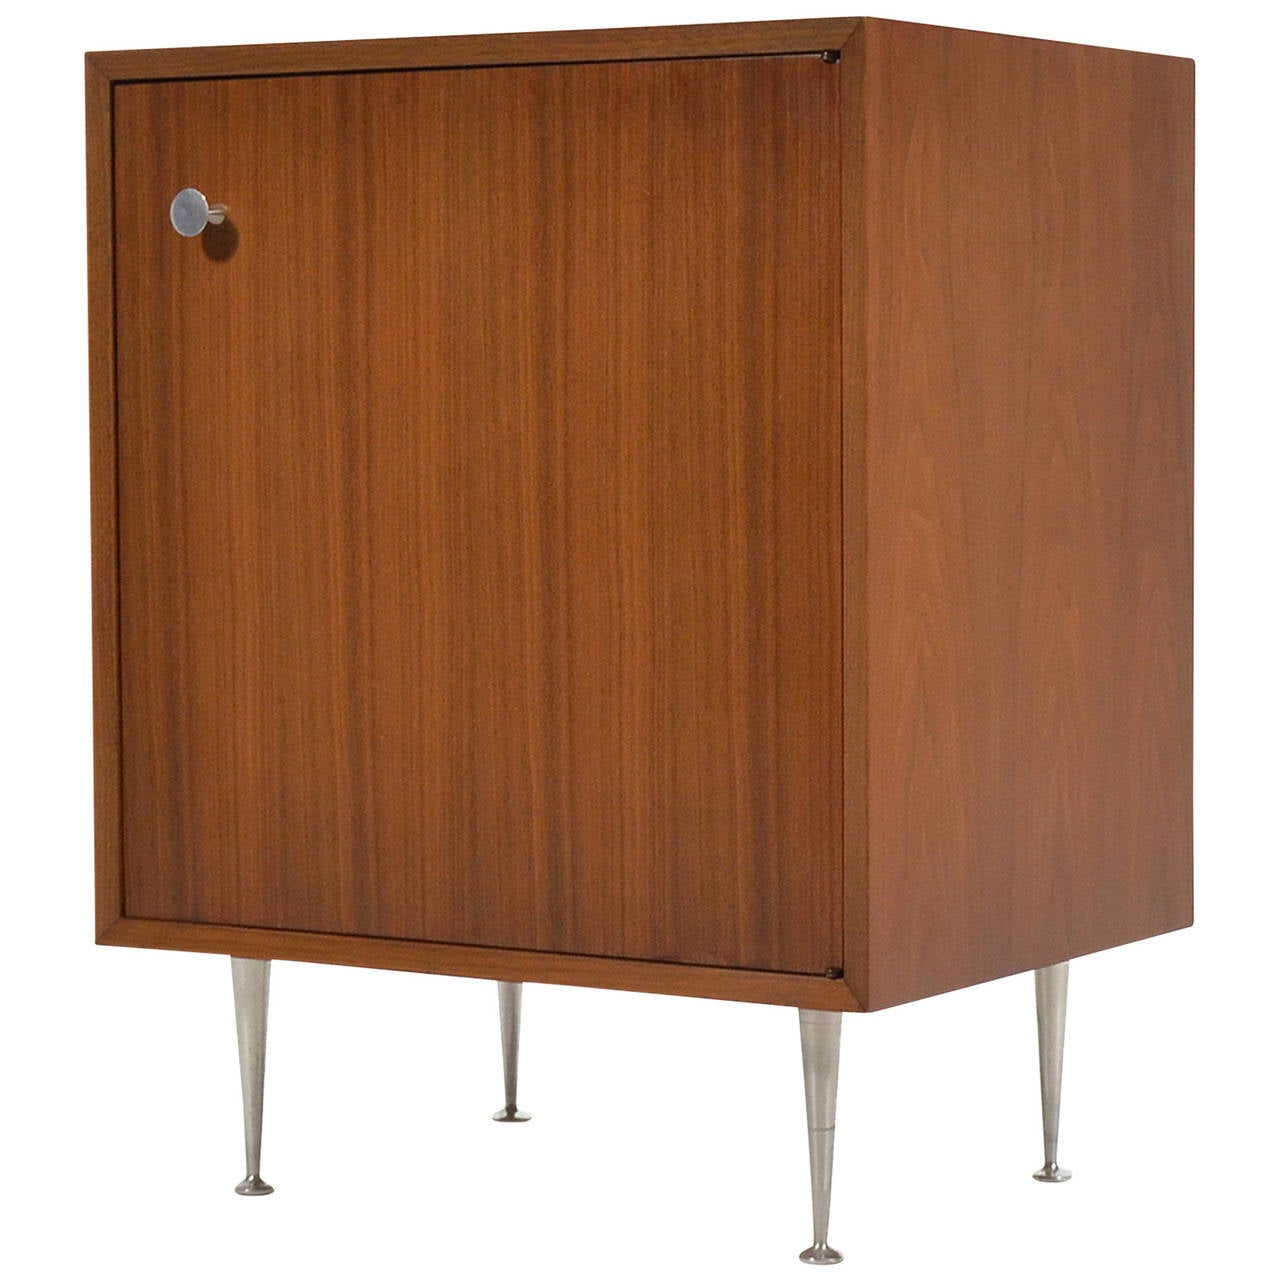 George Nelson Walnut Cabinet by Herman Miller For Sale